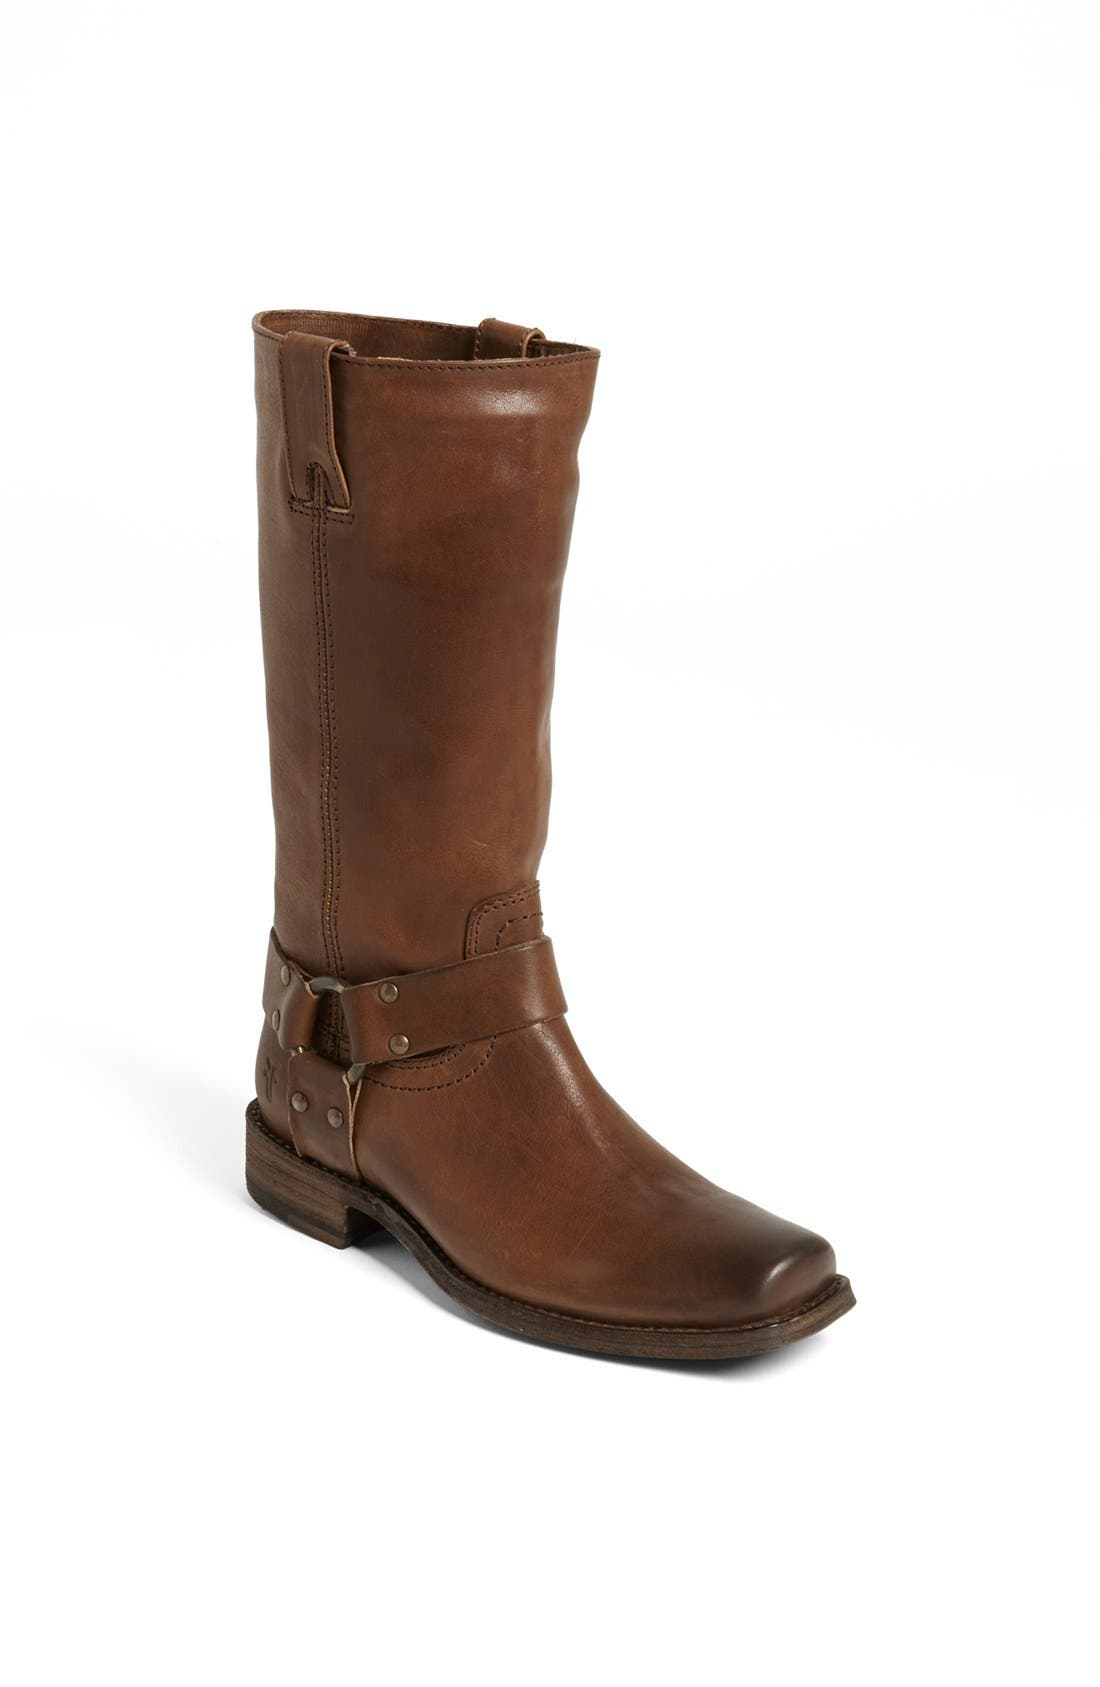 Alternate Image 1 Selected - Frye 'Smith' Harness Tall Boot